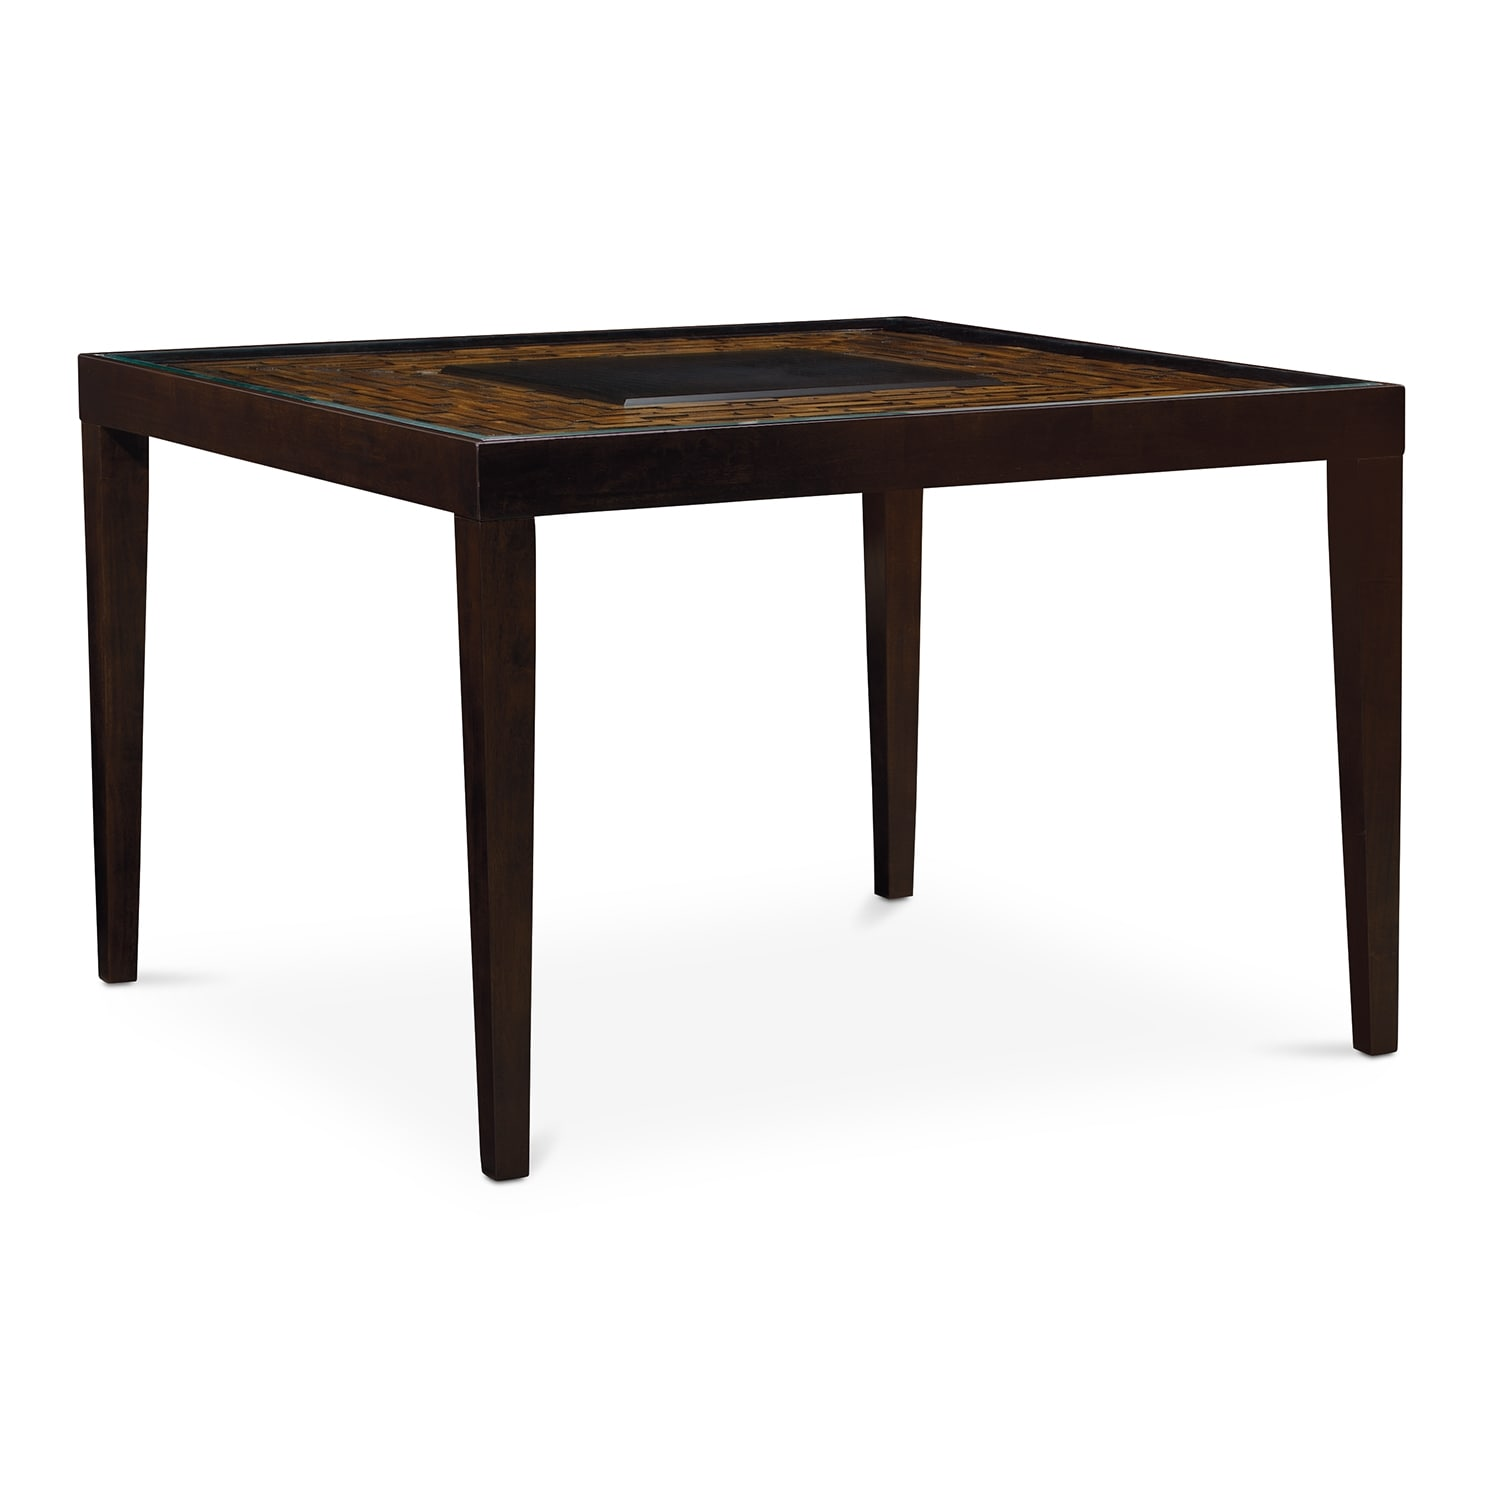 Cyprus ii dining room counter height table value city furniture - Height dining room table ...